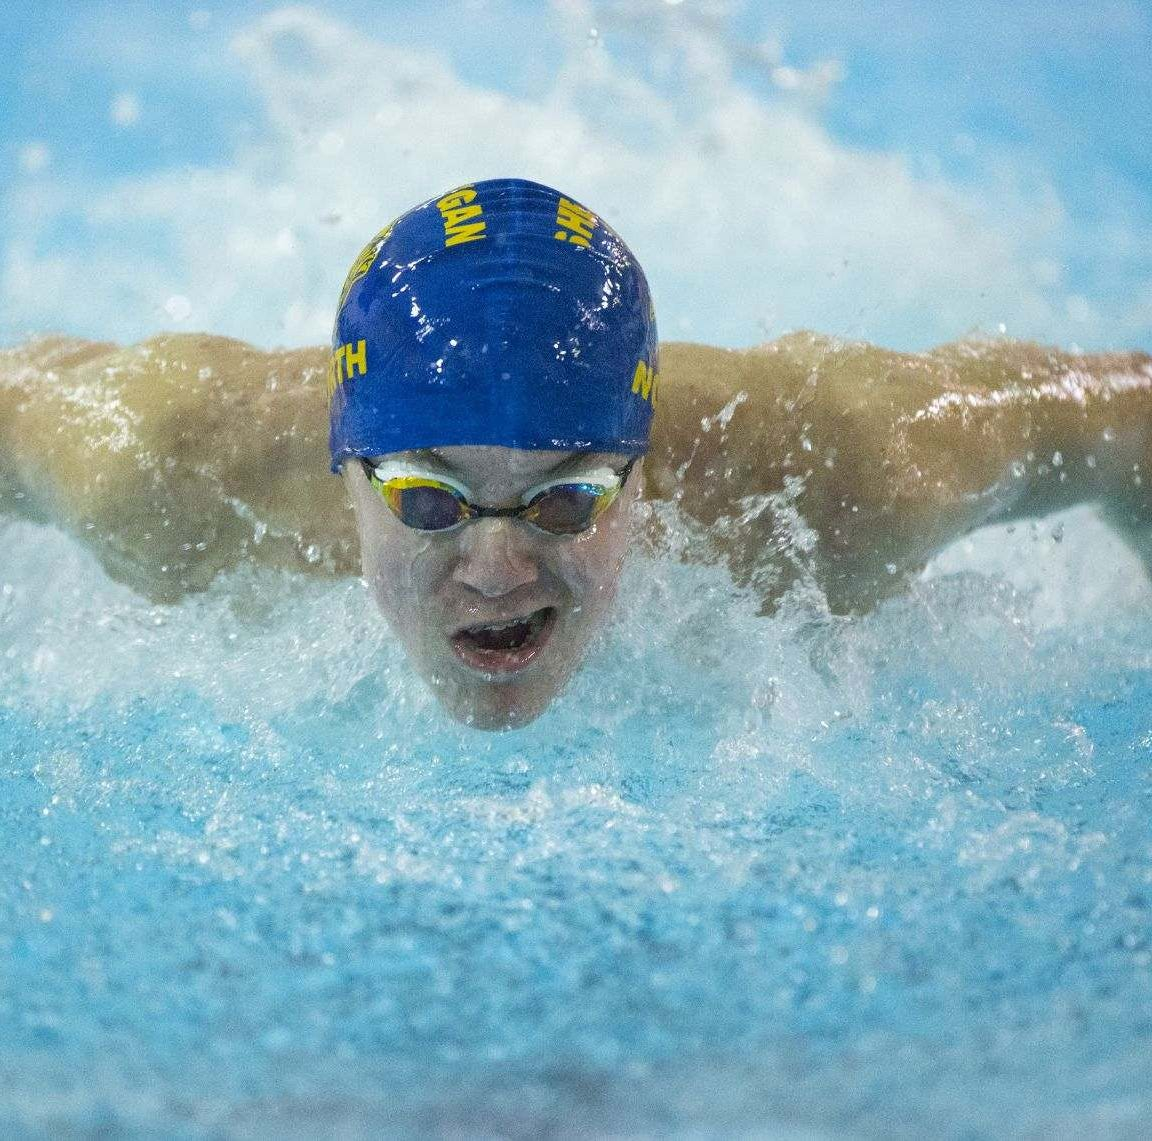 WIAA boys swimming: Sheboygan North freshman Hayon seeks state titles, Olympic trials